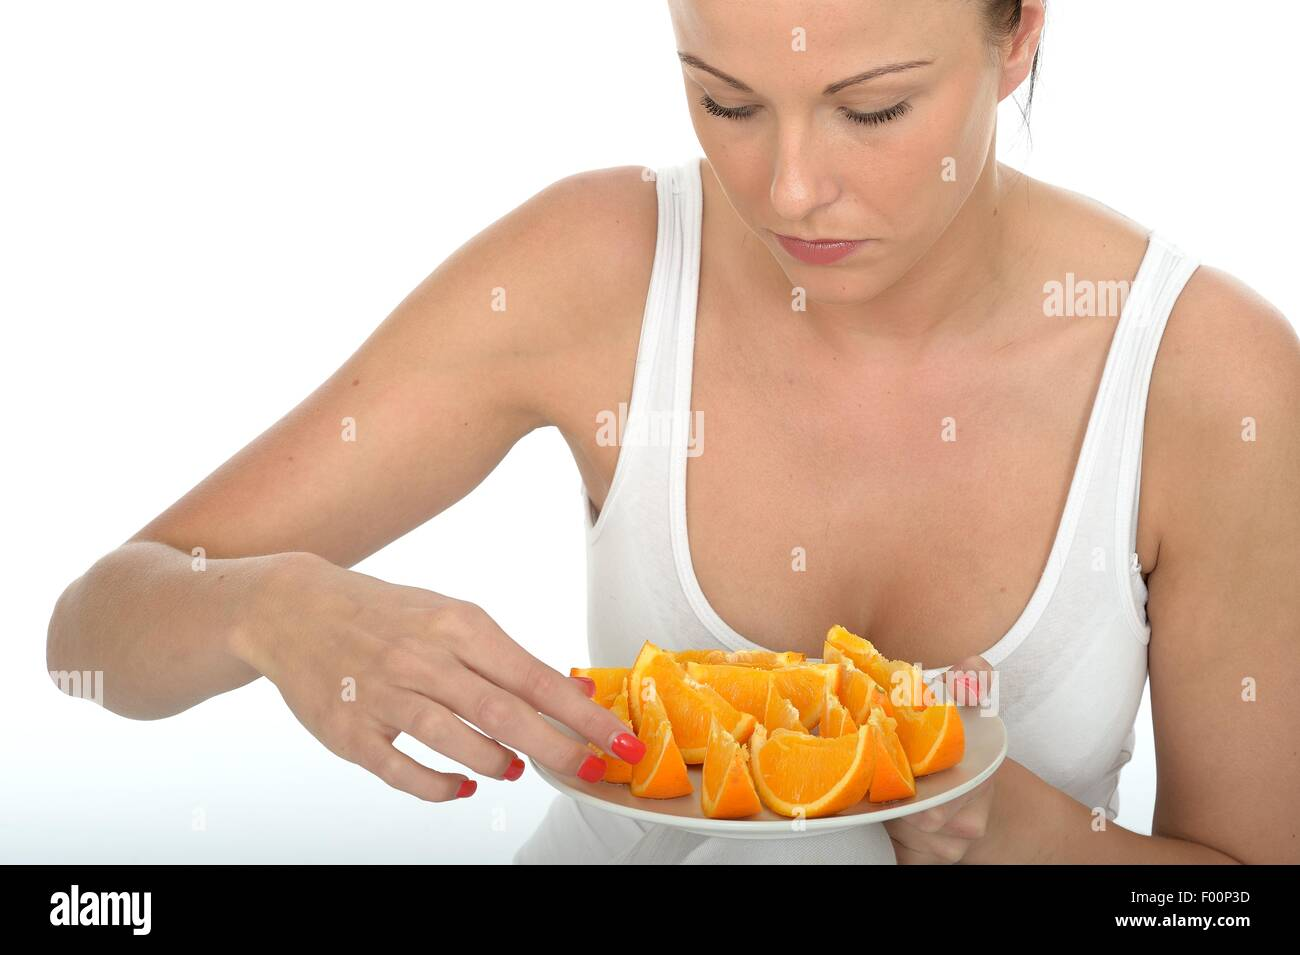 Attractive Happy Healthy Young Woman Holding a Plate of Fresh Cut Oranges - Stock Image